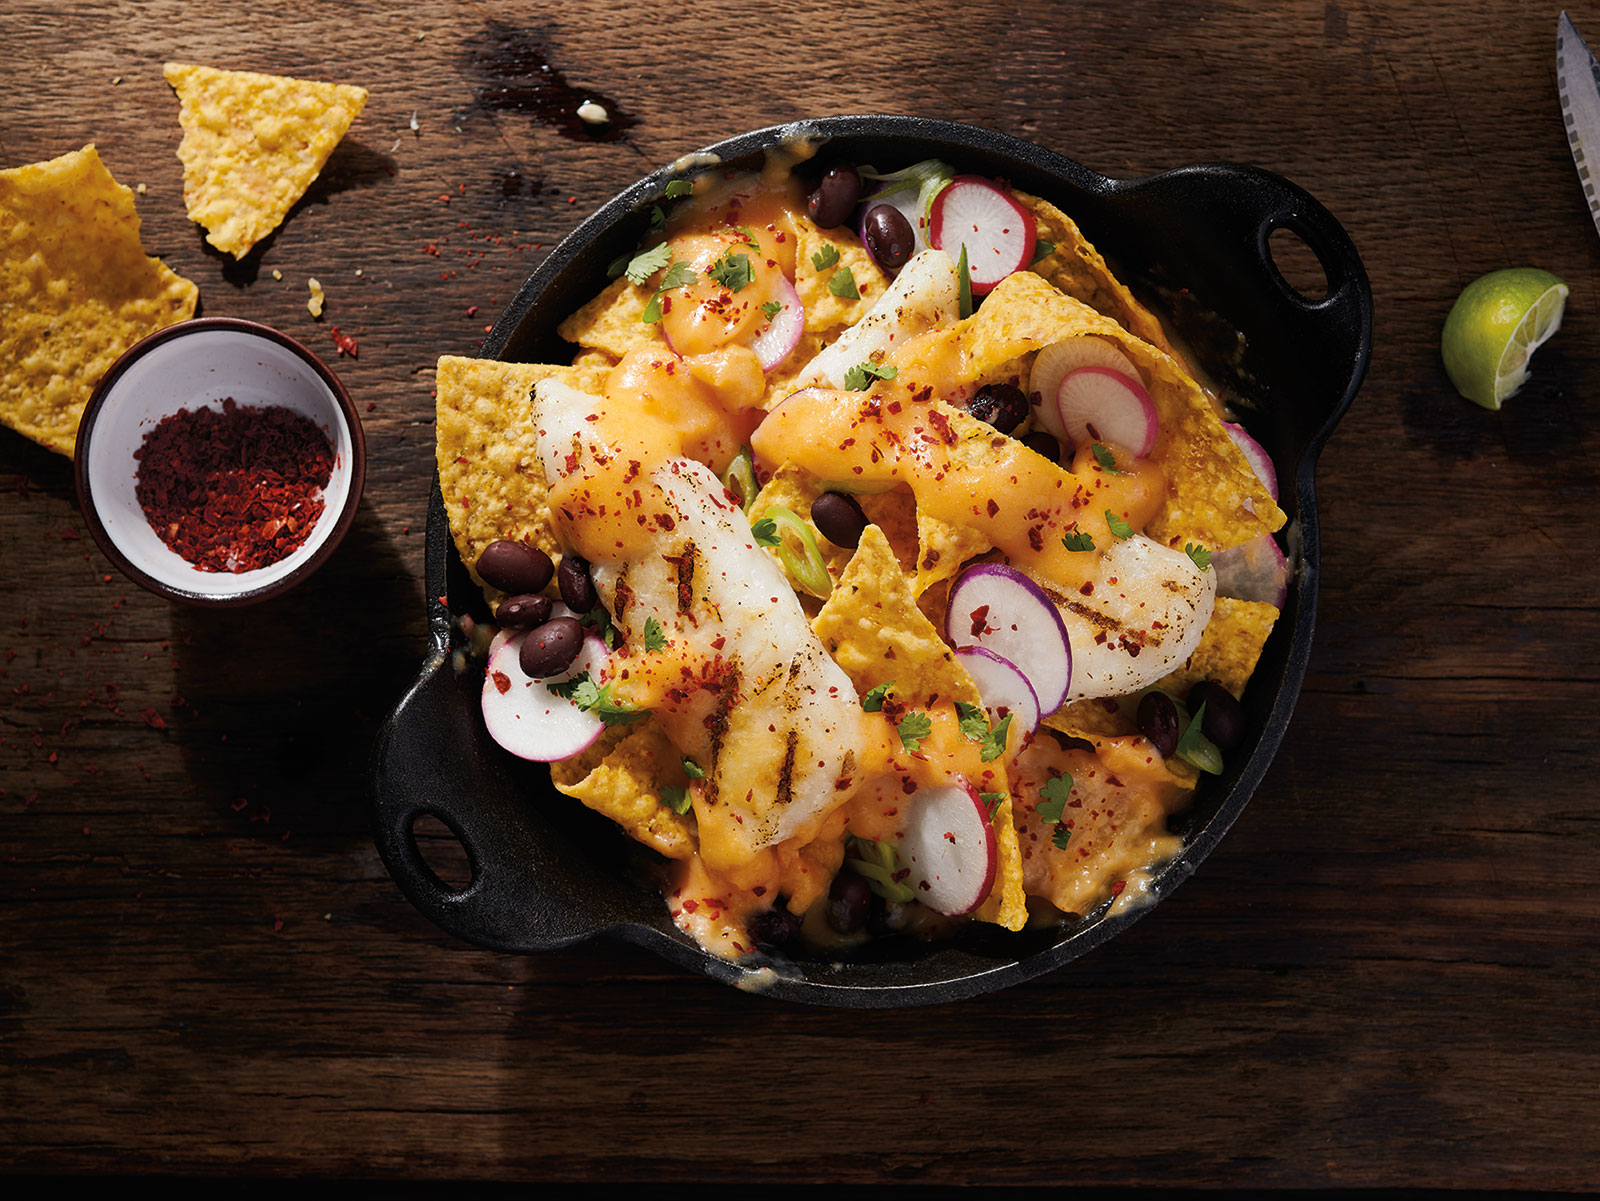 Korean Nachos with Grilled Wild Alaska Pollock & Kimchi Cheese Sauce